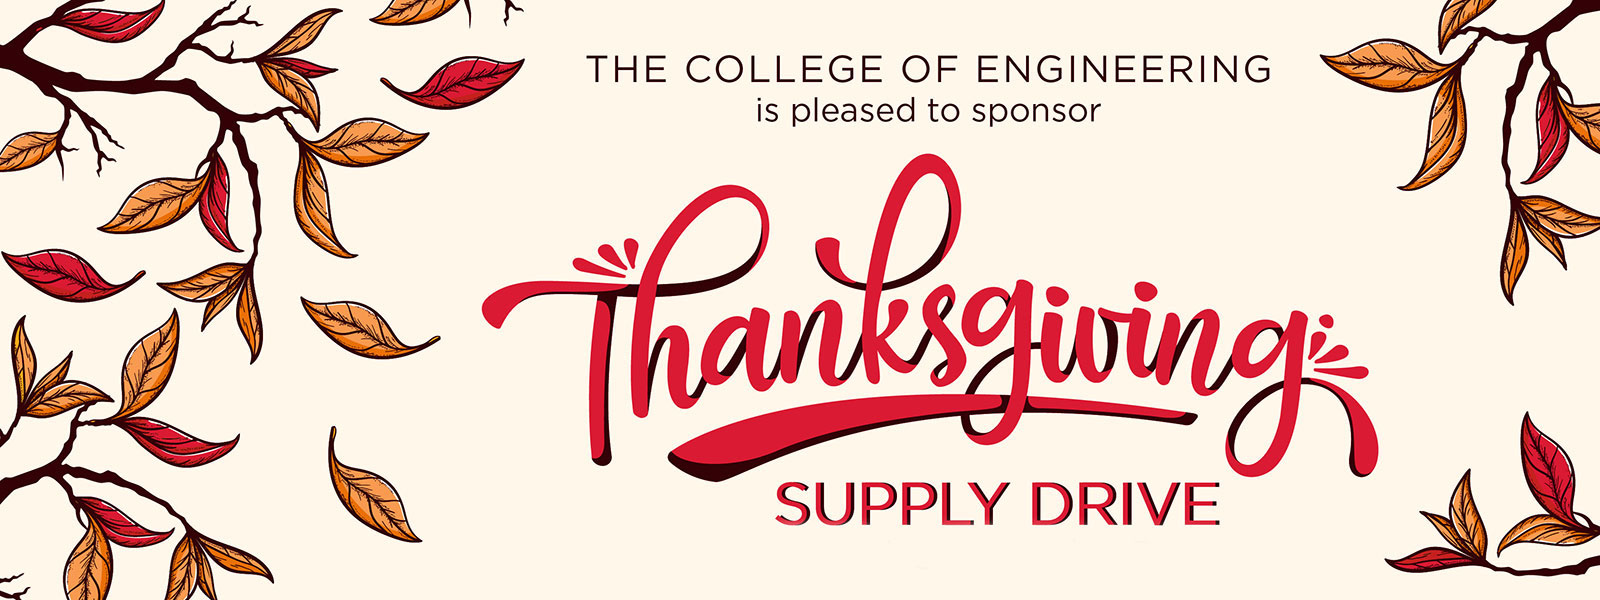 The College of Engineering is pleased to sponsor the Thanksgiving Supply Drive, benefitting the Husker Pantry